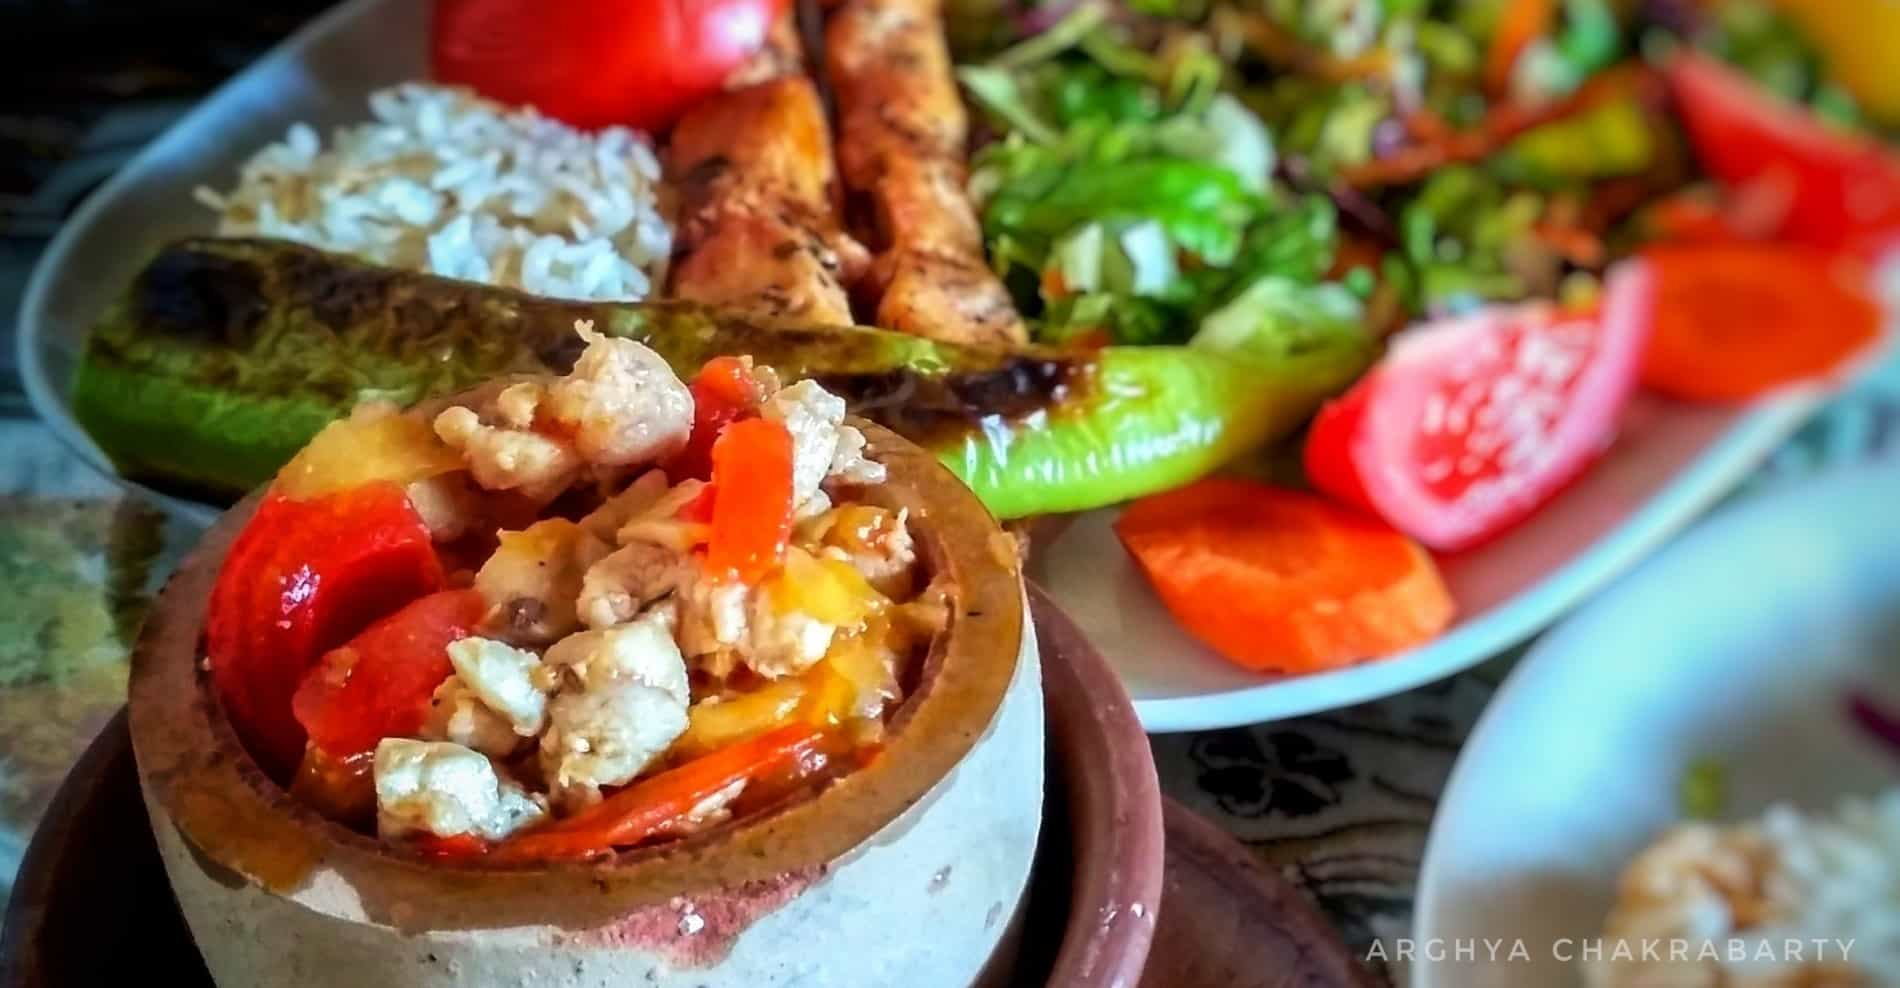 A guide to Turkish gastronomy